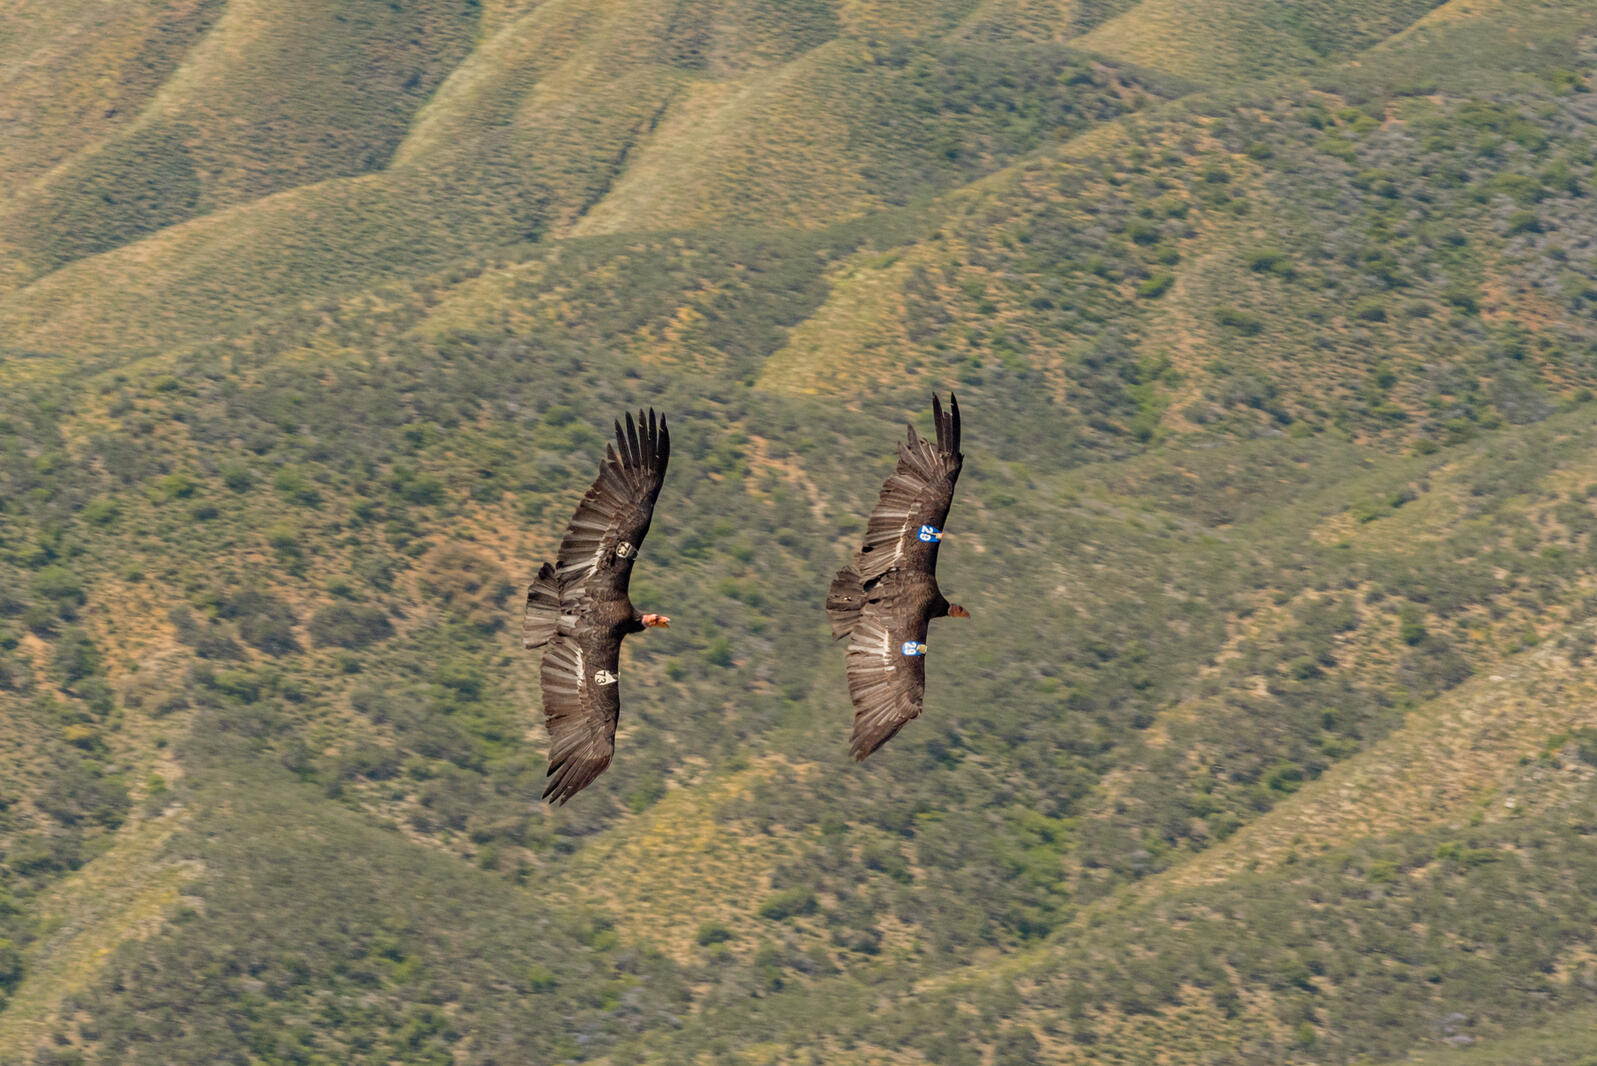 Two California Condors soar above forested hills. The dark-brown birds with featherless heads are the largest land birds in North America, with wingspans stretching 10 feet. Jeff Foott/NPL/Minden